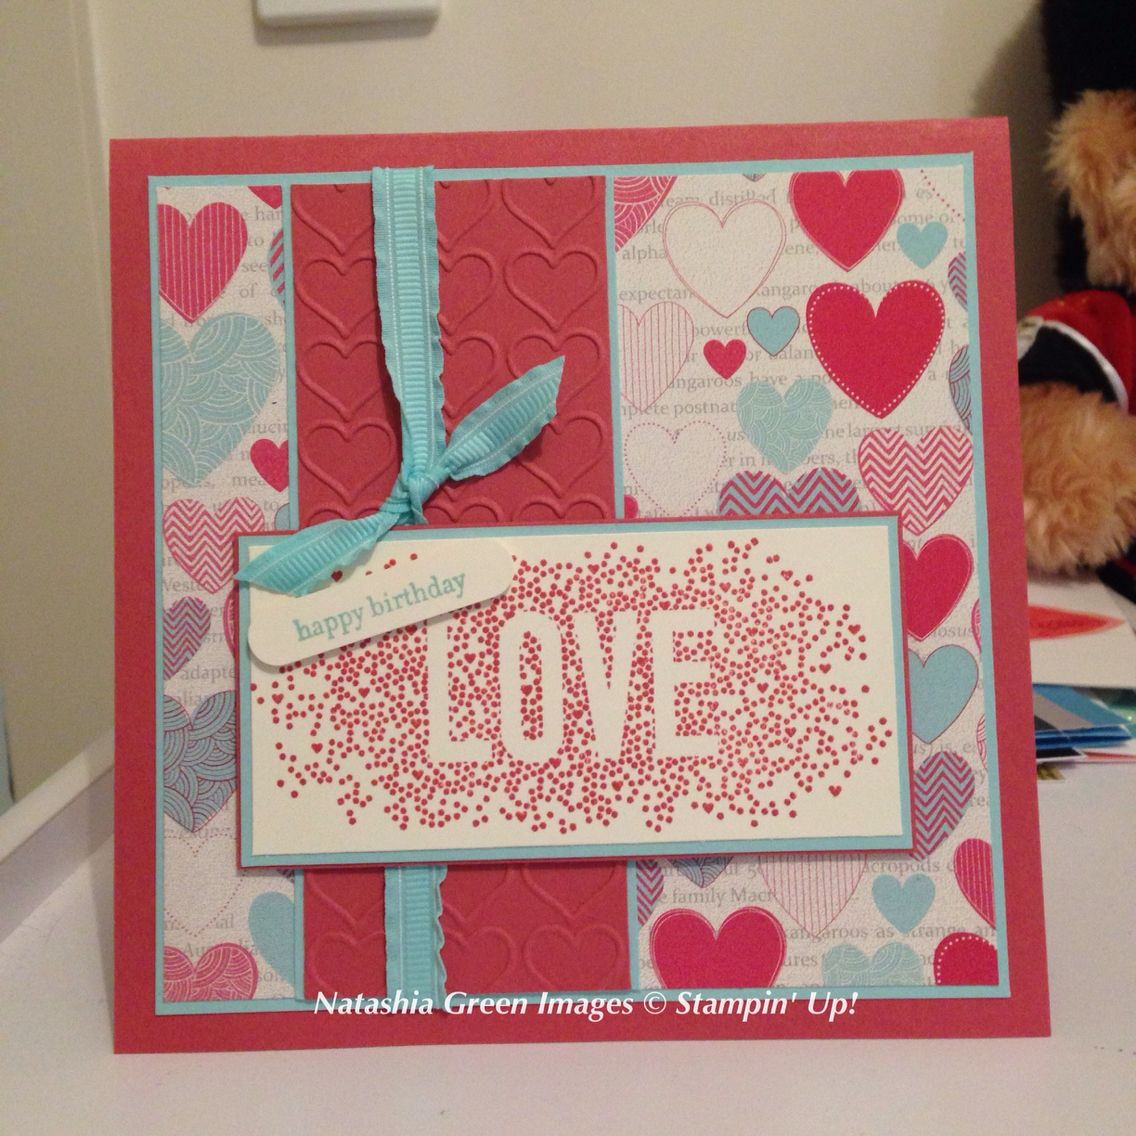 Seasonally Scattered- Stampin' Up!